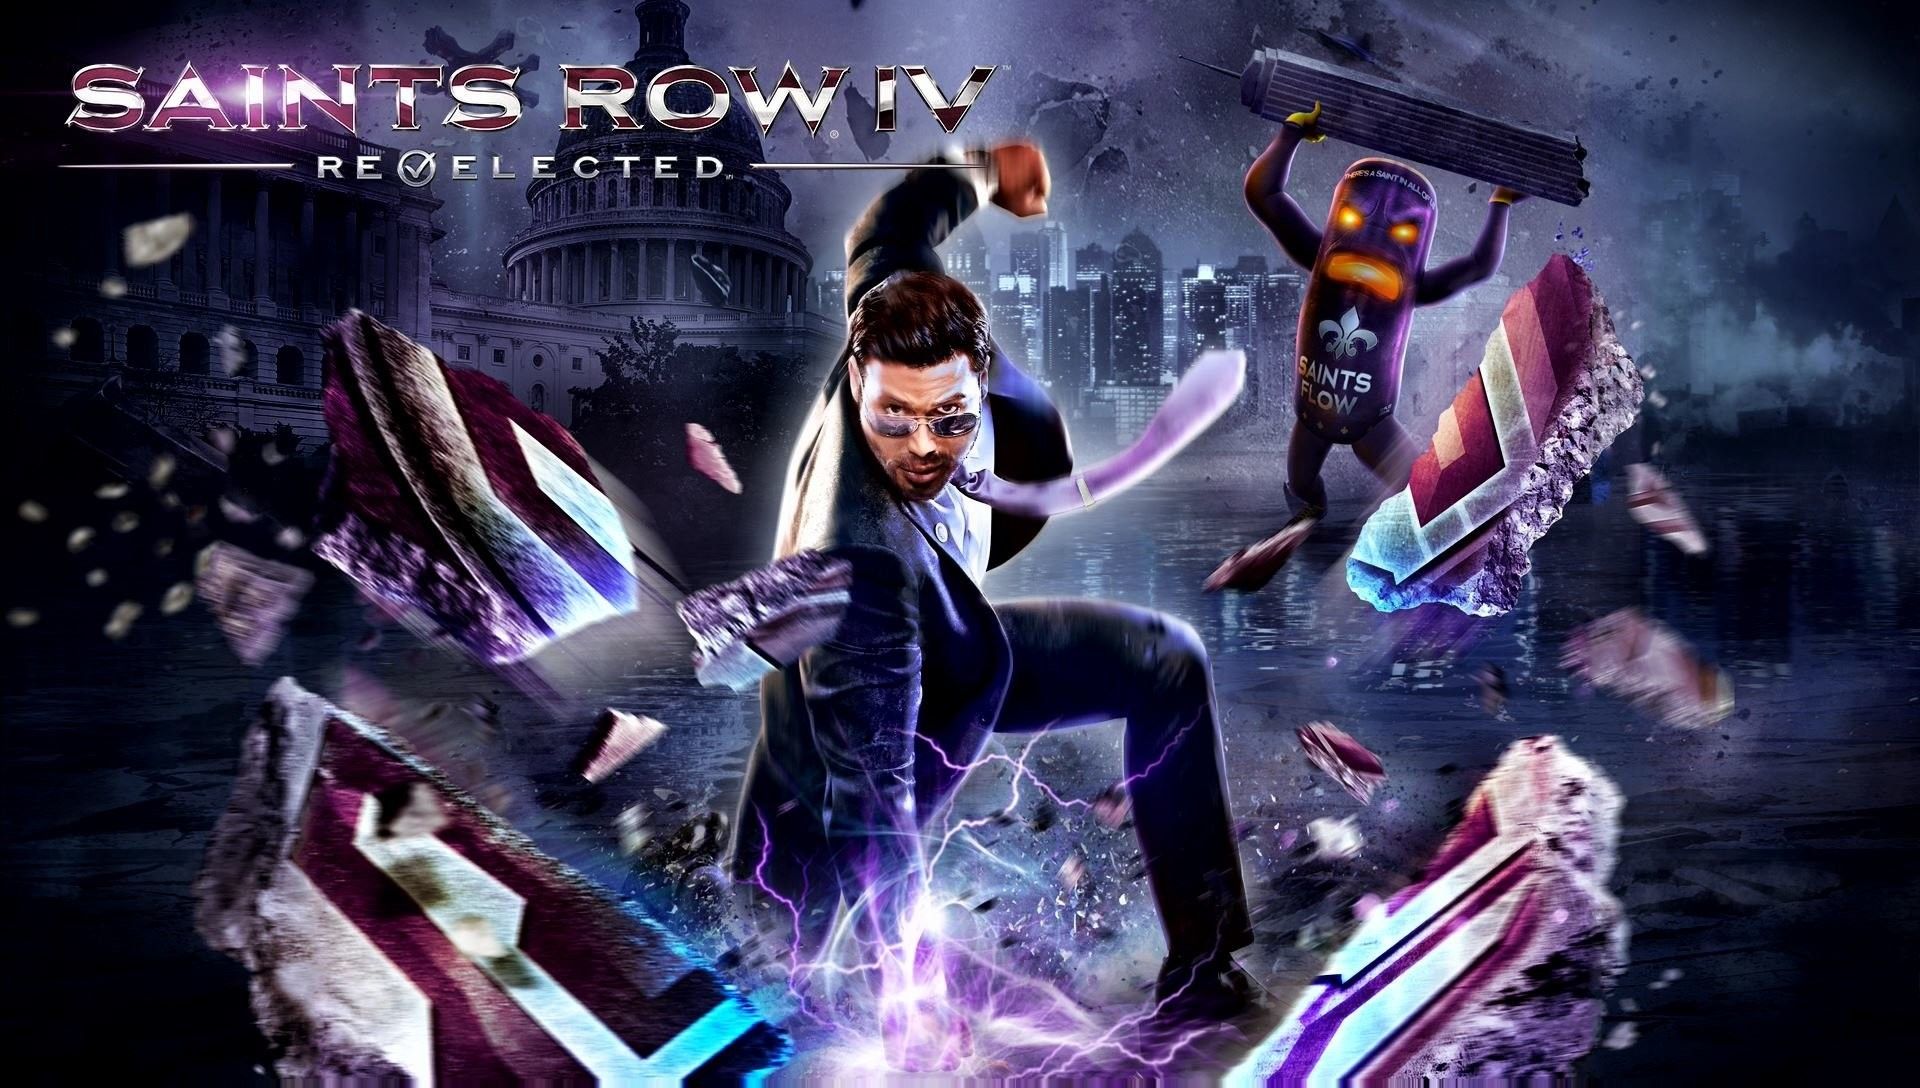 1920x1088 Video Game - Saints Row IV: Re-Elected Wallpaper